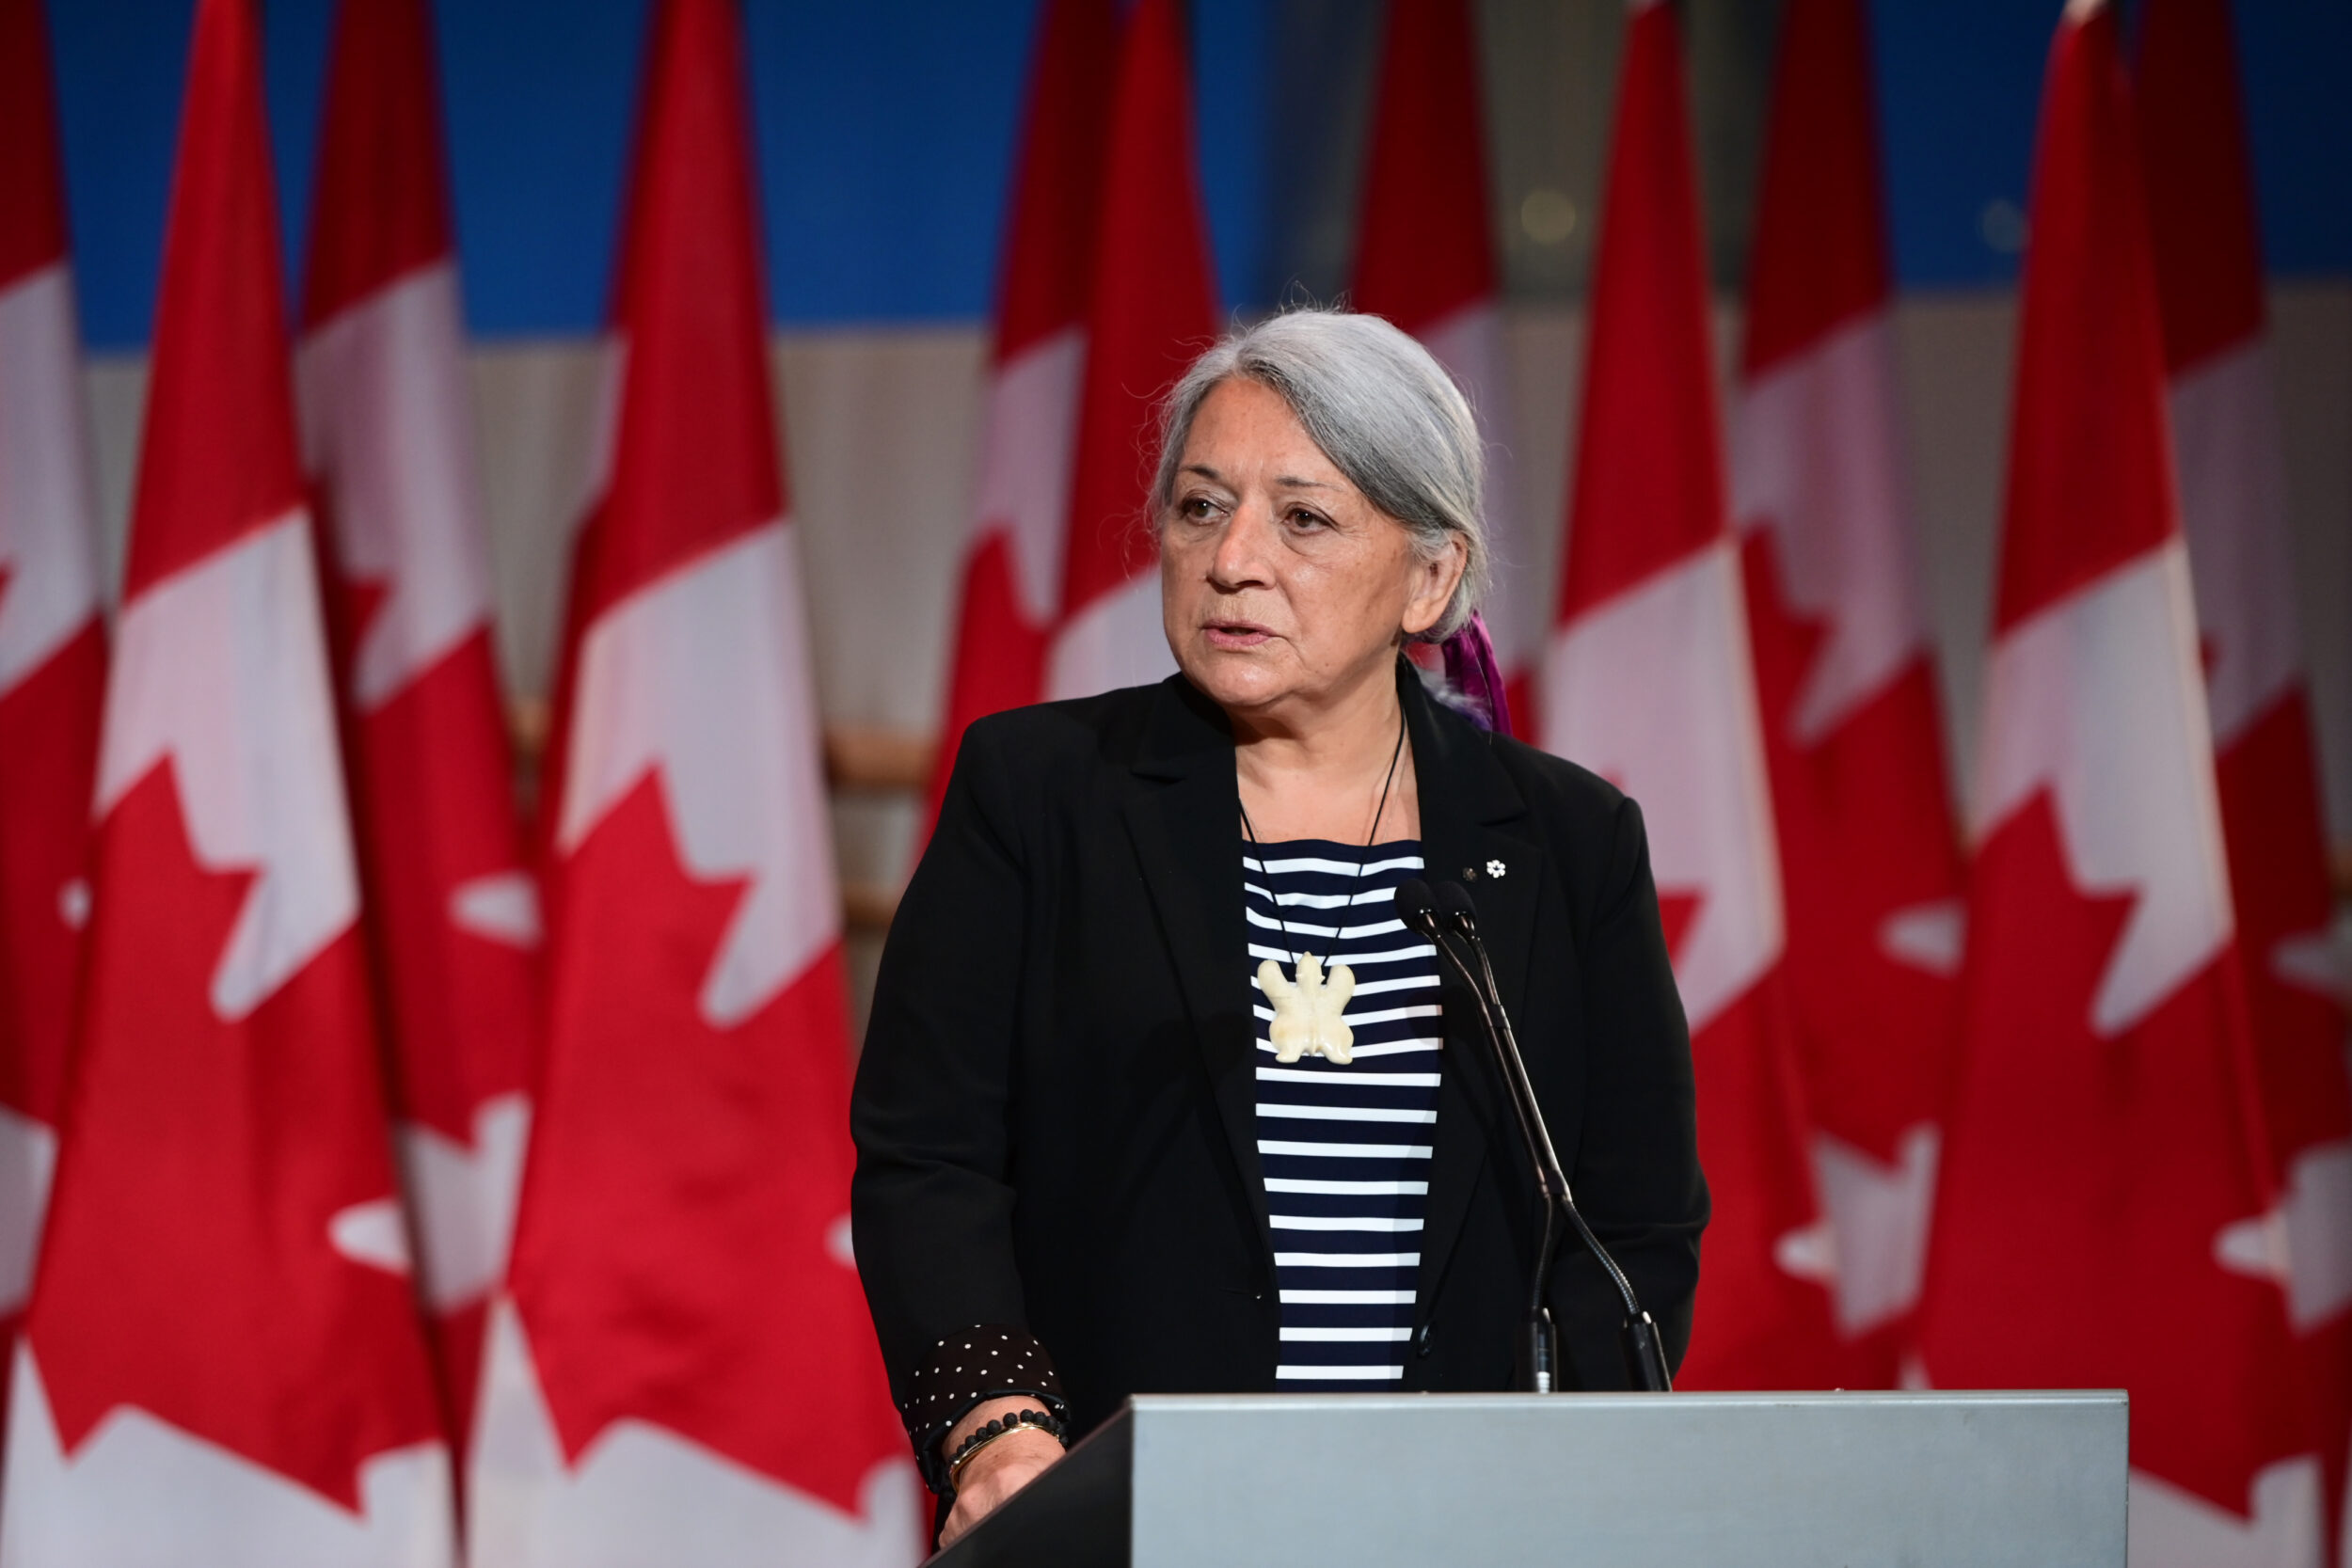 Mary Simon has been named Canada's Governor General